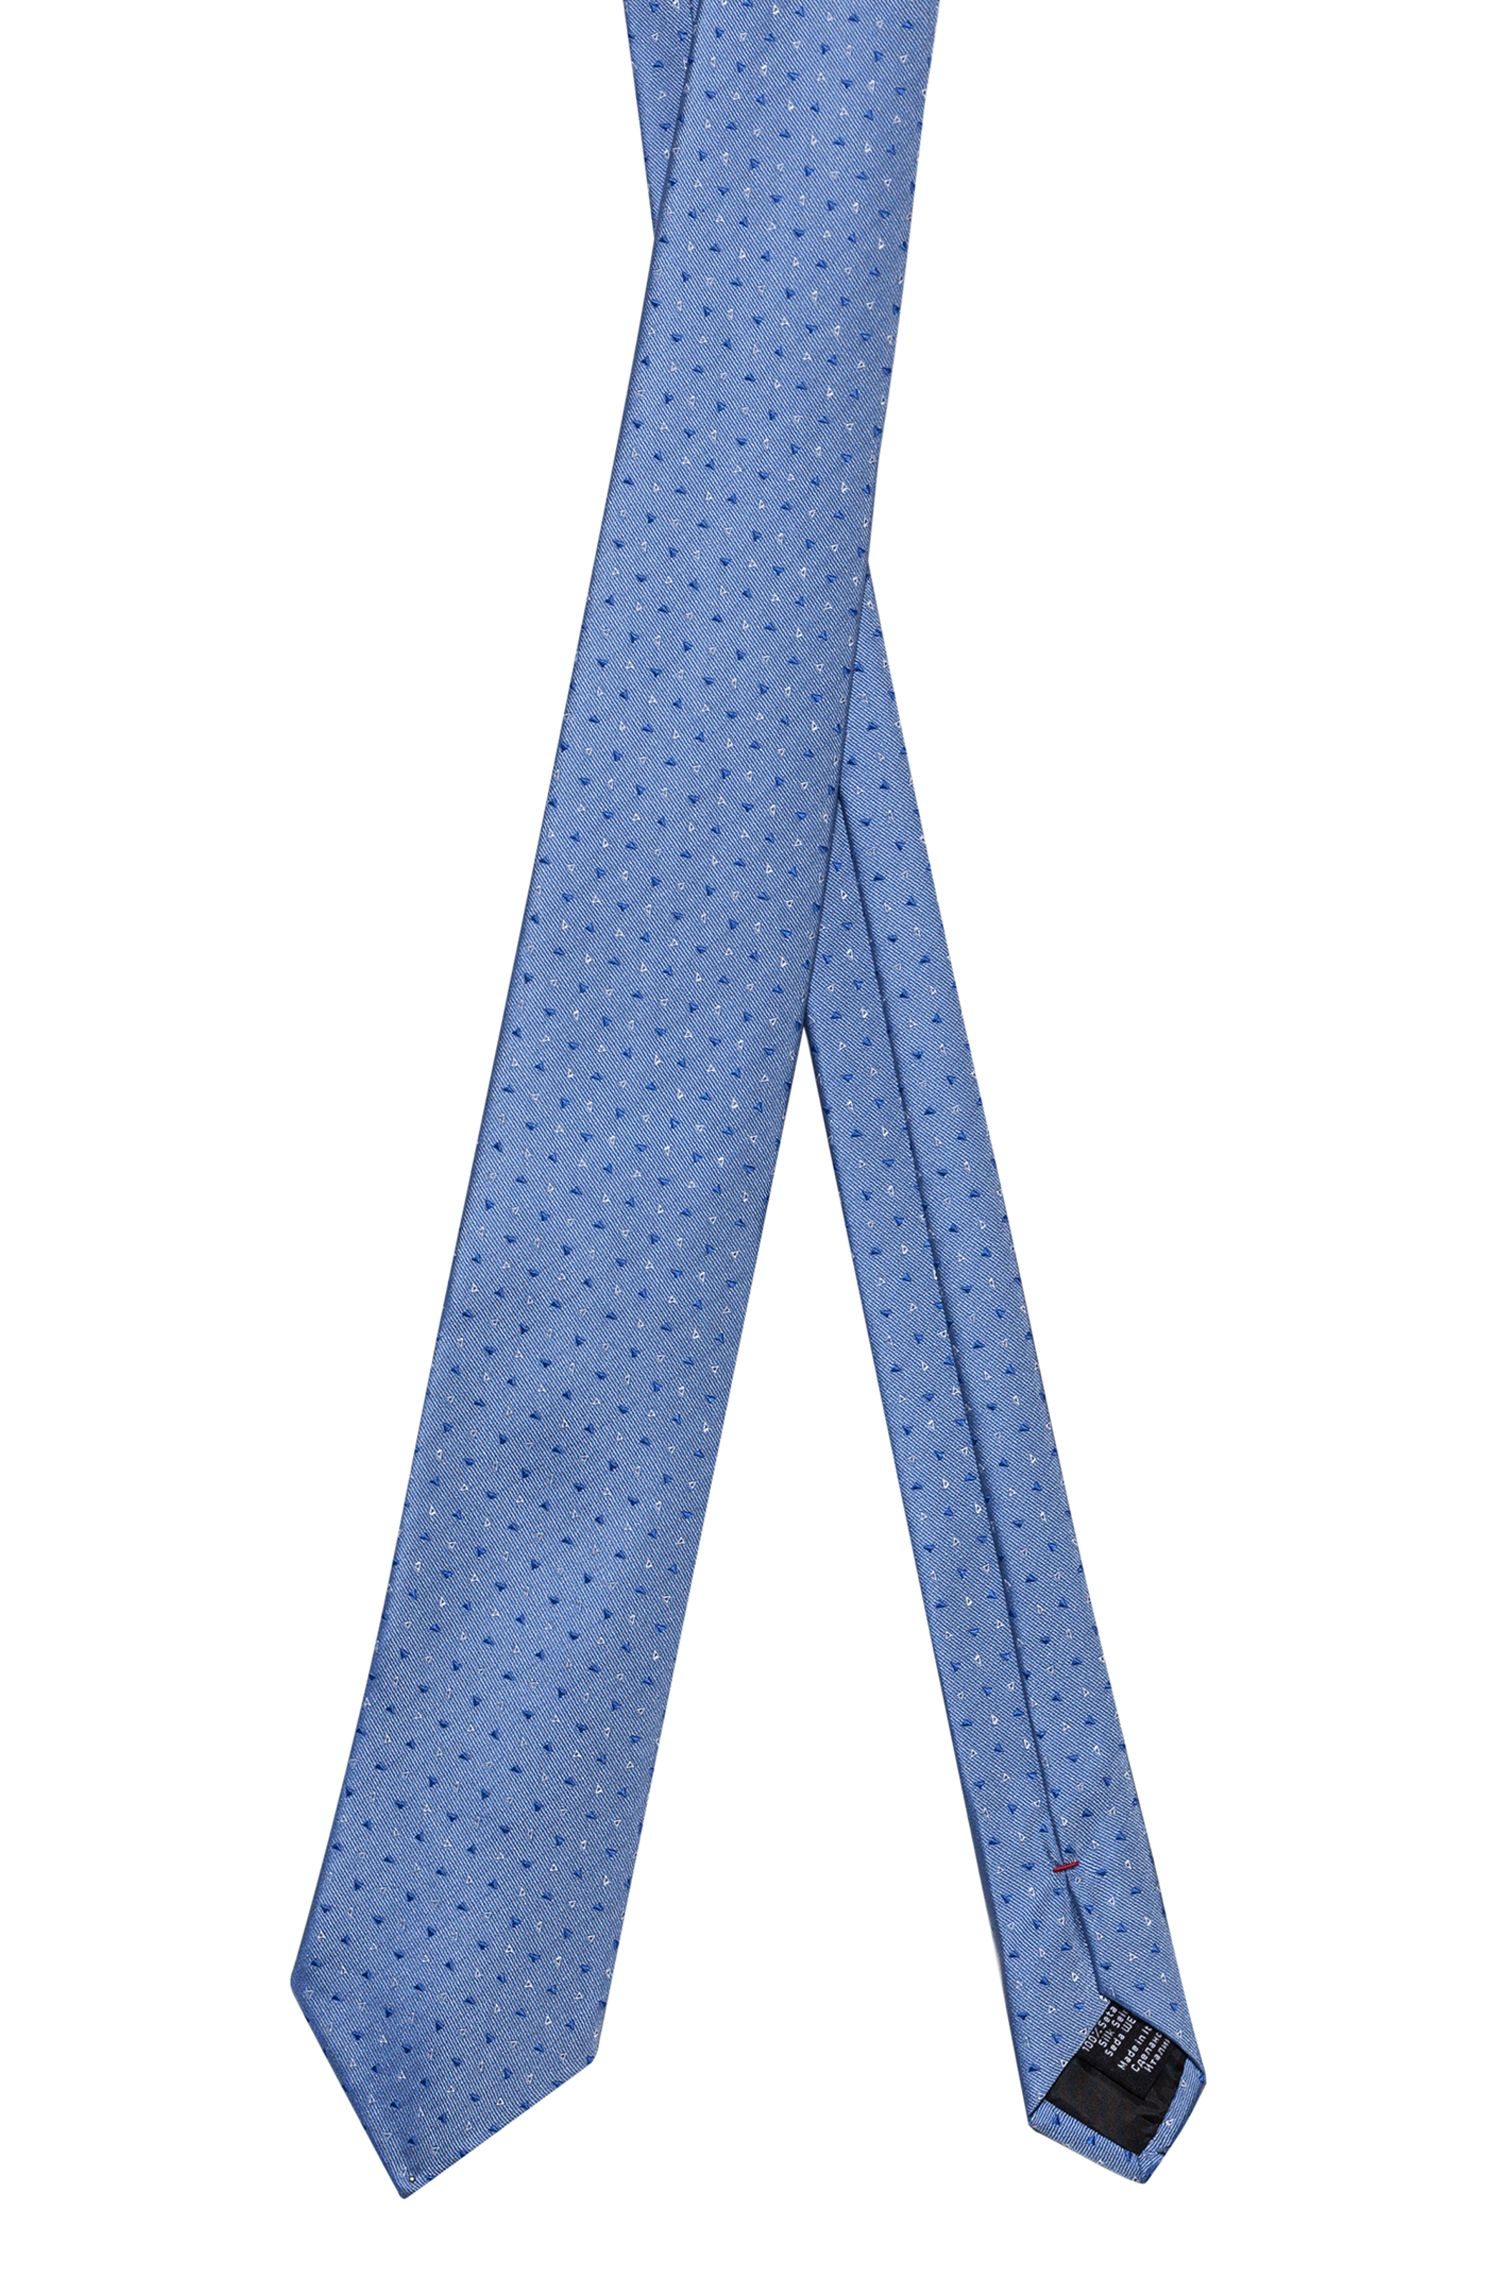 Silk-jacquard tie with triangle motif, Patterned